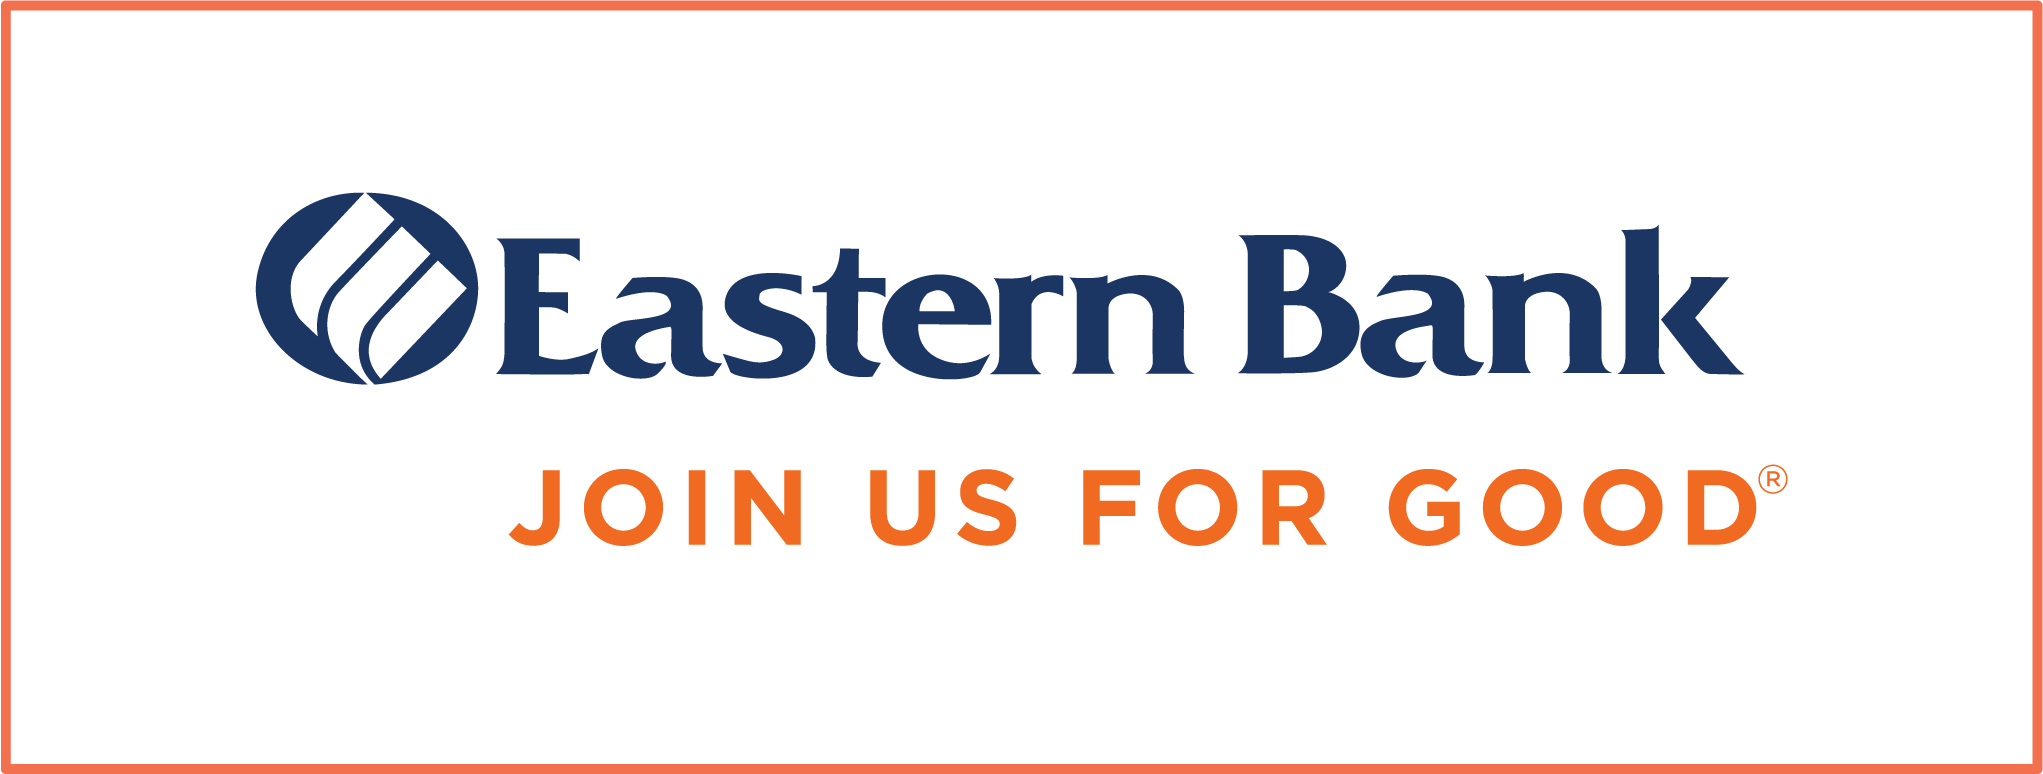 Eastern Bank Join Us For Good Logo